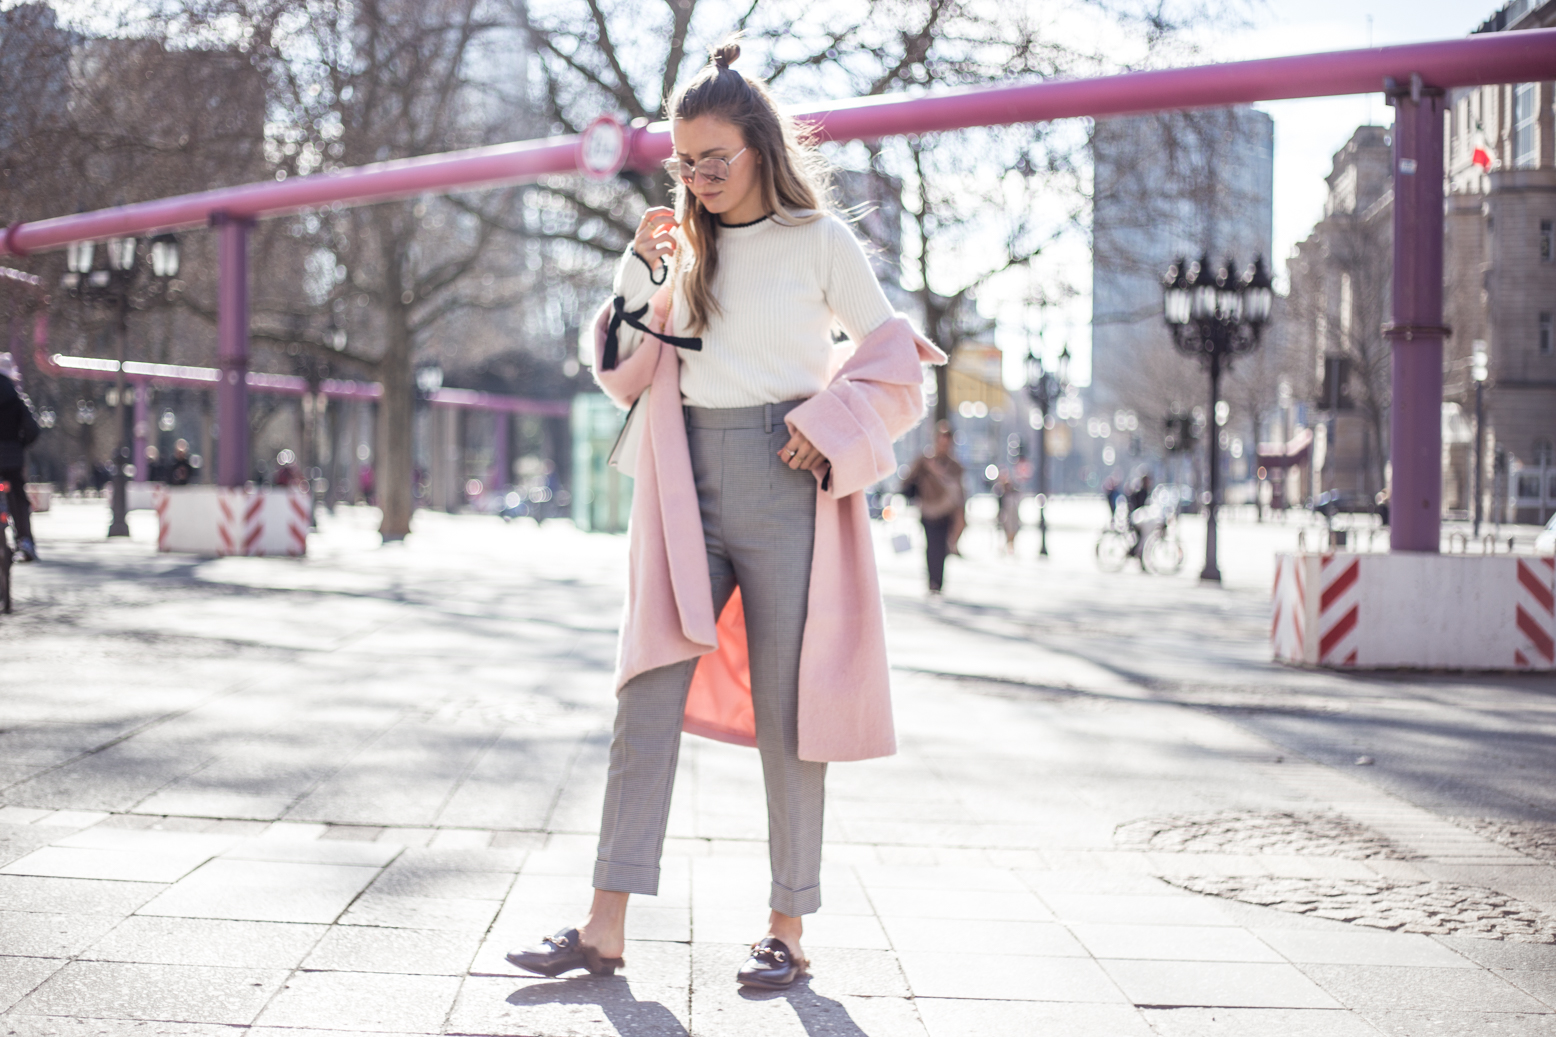 pink-coat-gucci-slipper-livia-auer-1636